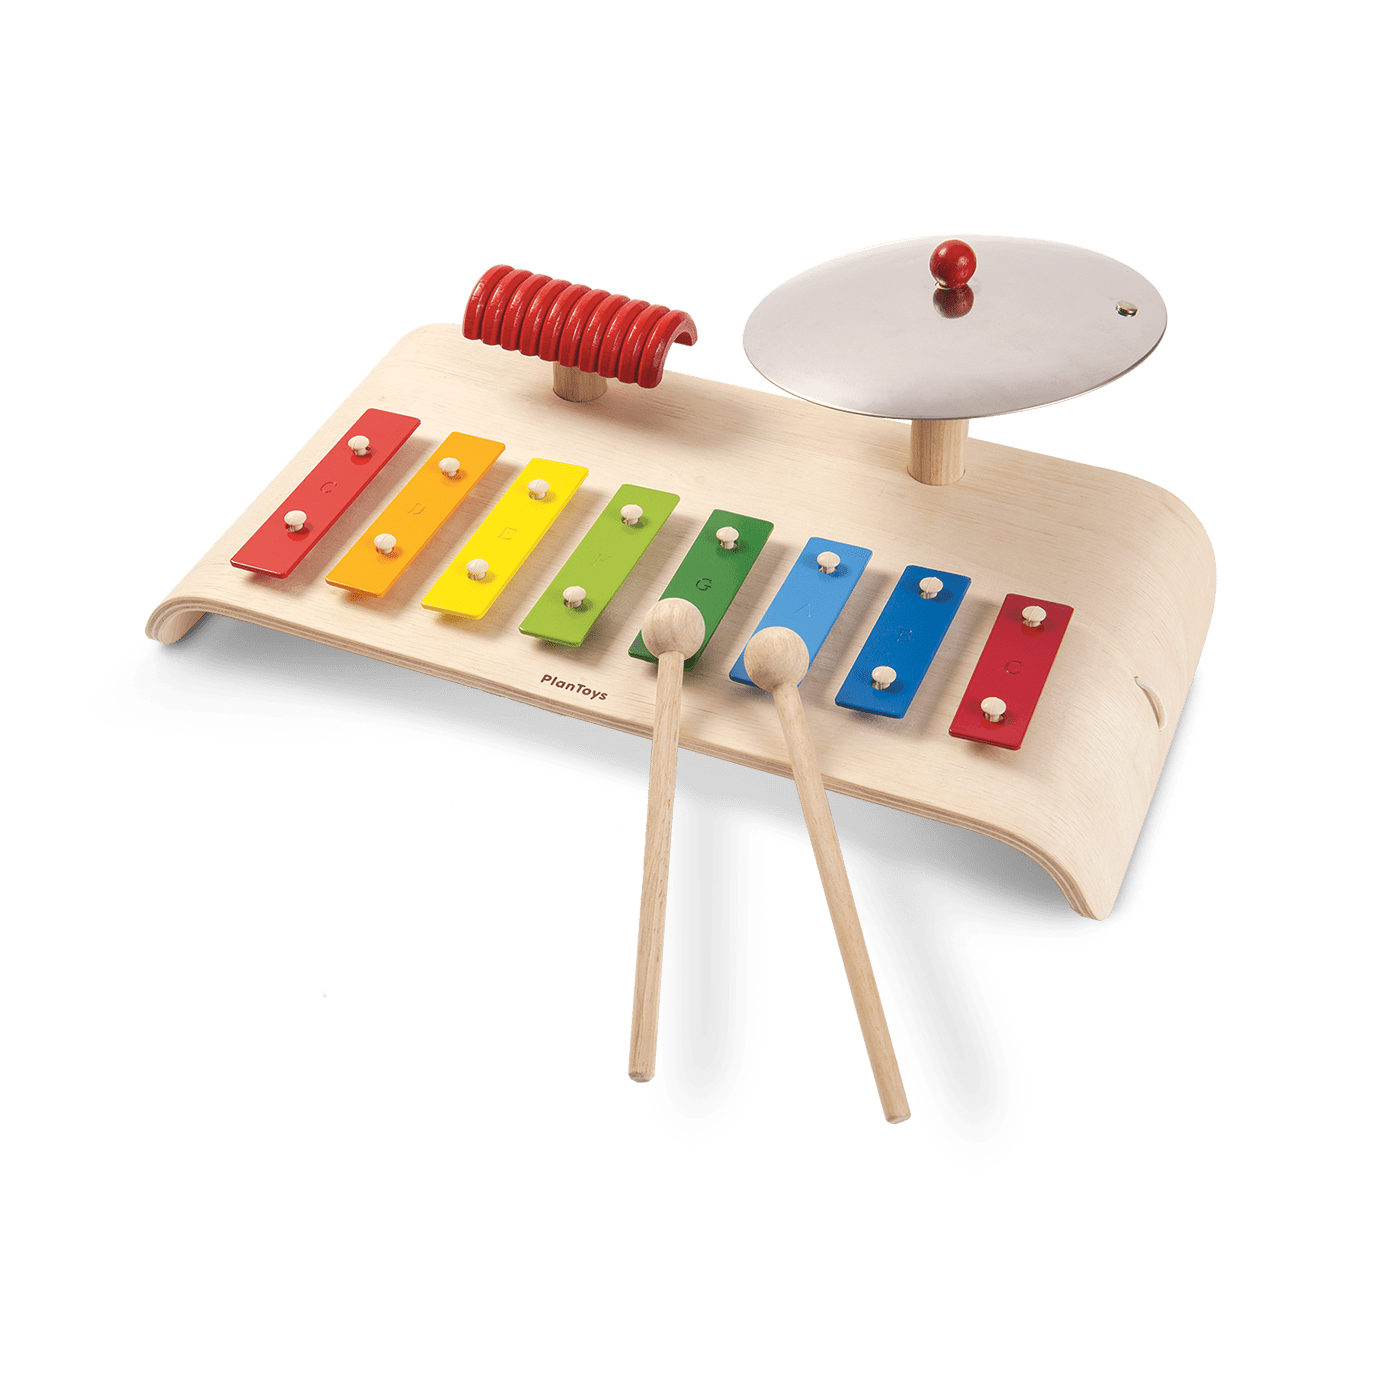 6422_PlanToys_MUSICAL_SET_Music_Musical_Auditory_Concentration_Emotion_Coordination_Creative_3yrs_Wooden_toys_Education_toys_Safety_Toys_Non-toxic_0.png